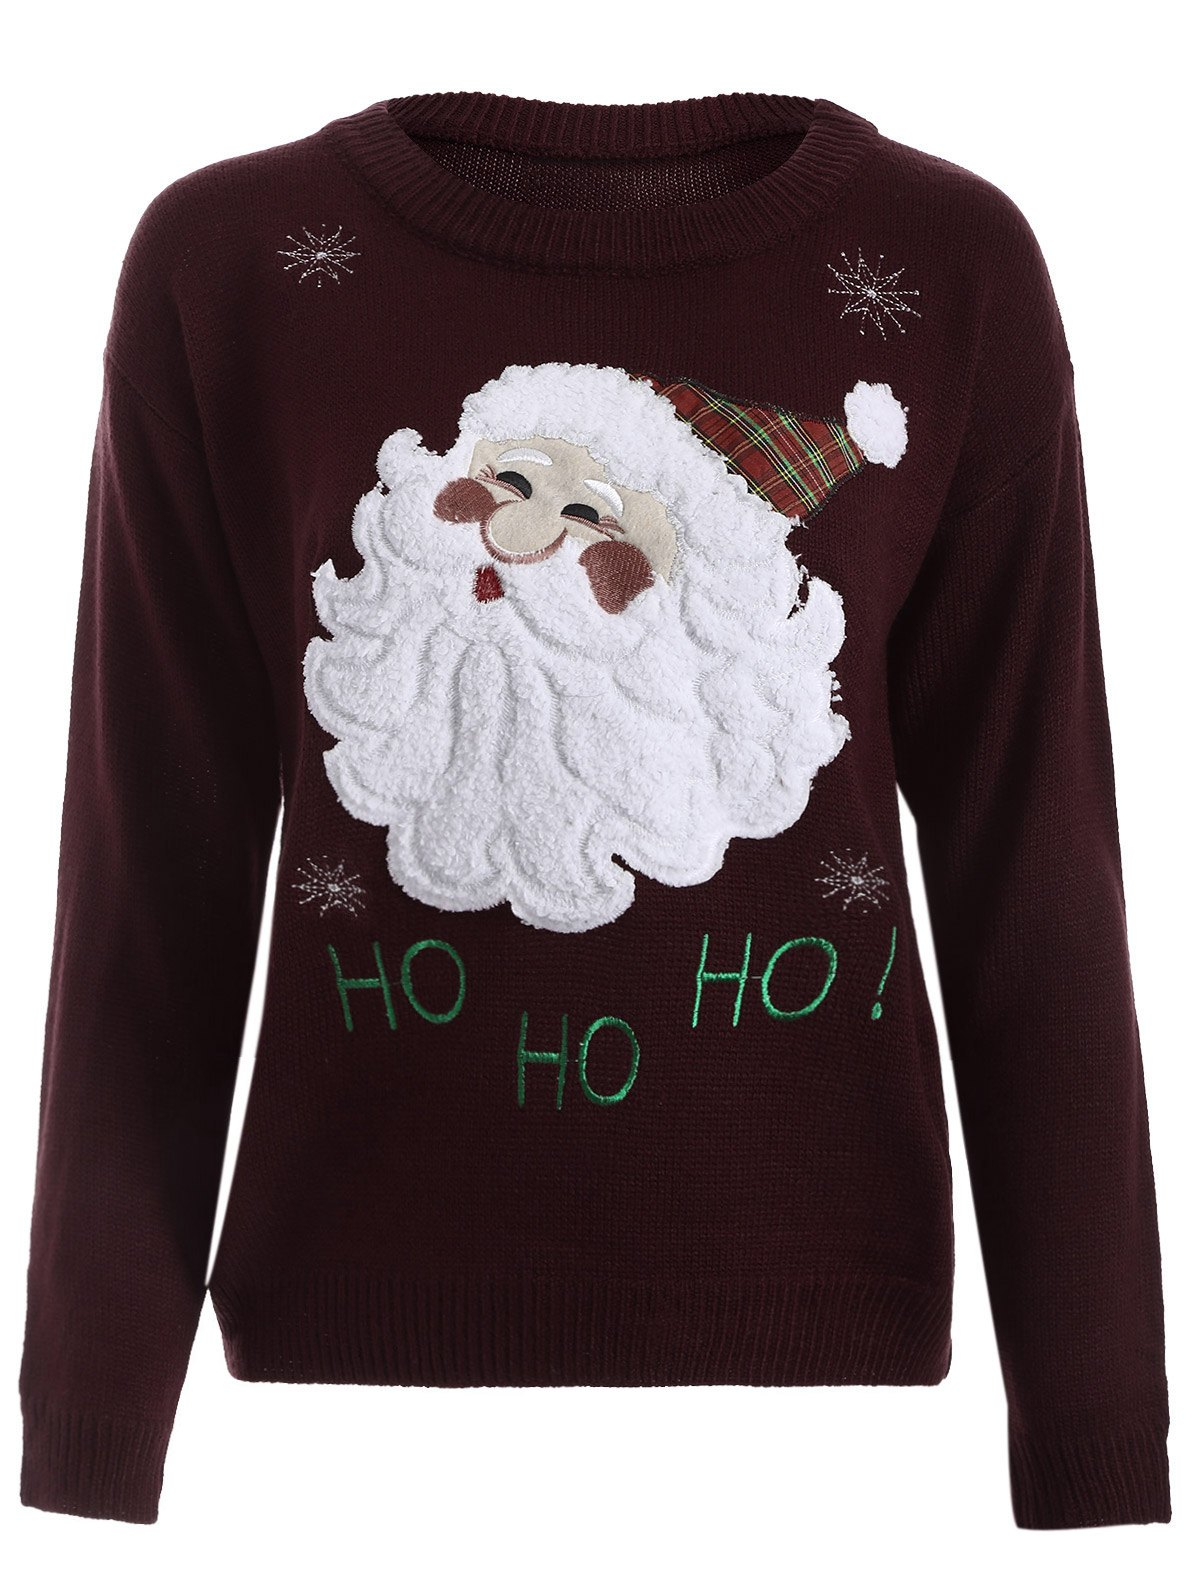 Santa Claus Snowflake Christmas SwearerWOMEN<br><br>Size: ONE SIZE; Color: WINE RED; Type: Pullovers; Material: Cotton,Polyester; Sleeve Length: Full; Collar: Crew Neck; Style: Casual; Pattern Type: Character; Season: Winter; Elasticity: Elastic; Weight: 0.6000kg; Package Contents: 1 x Sweater;